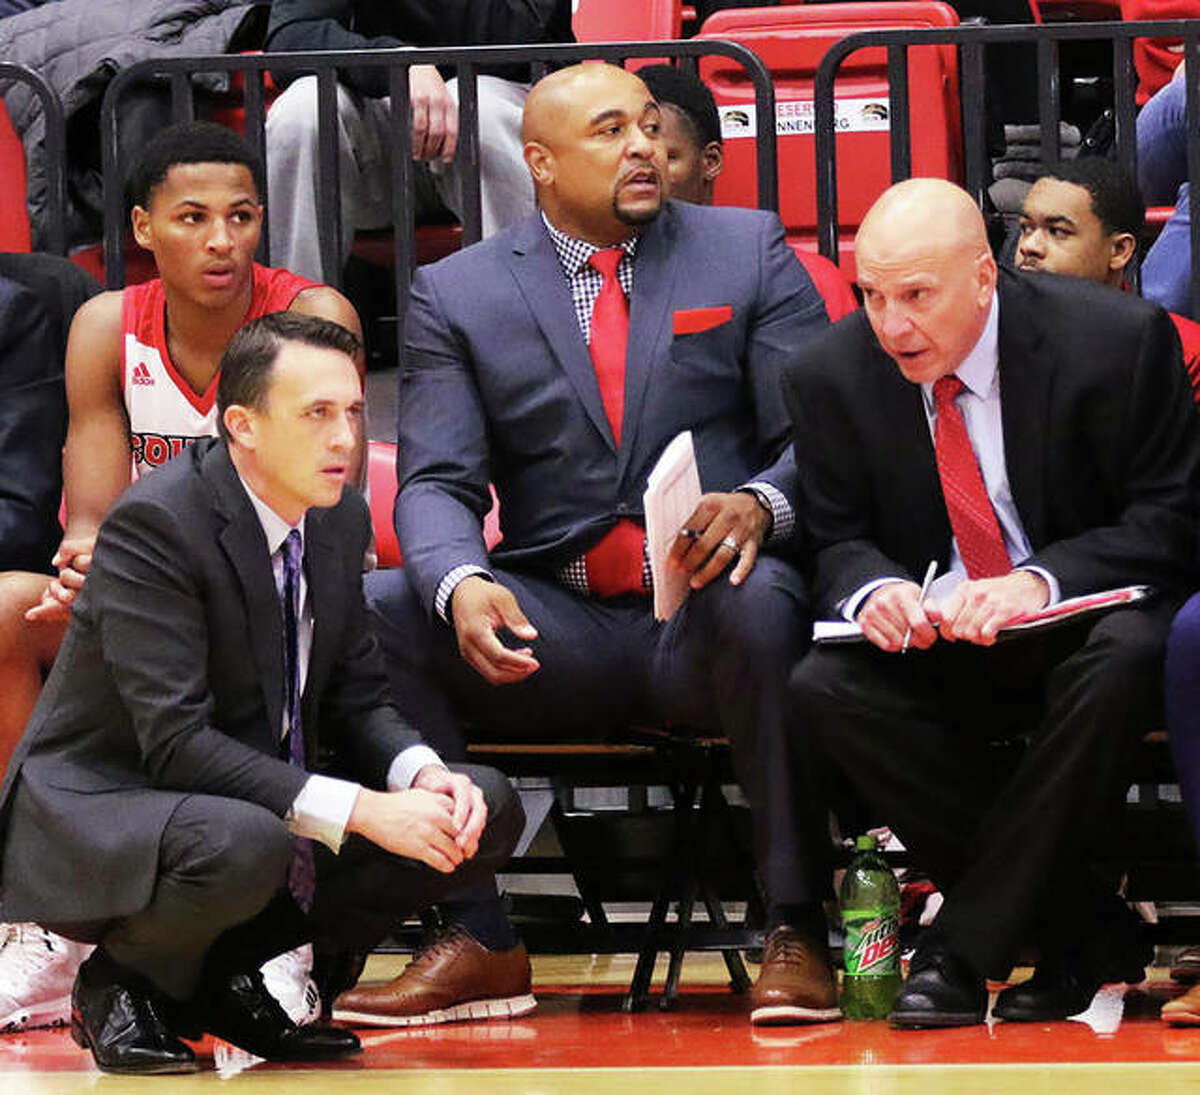 SIUE assistant coach Mike Waldo (right) talks with head coach Brian Barone (left) during a November 2019 game in Edwardsville. Waldo has been elevated to special assistant to the head coach for the Cougars.